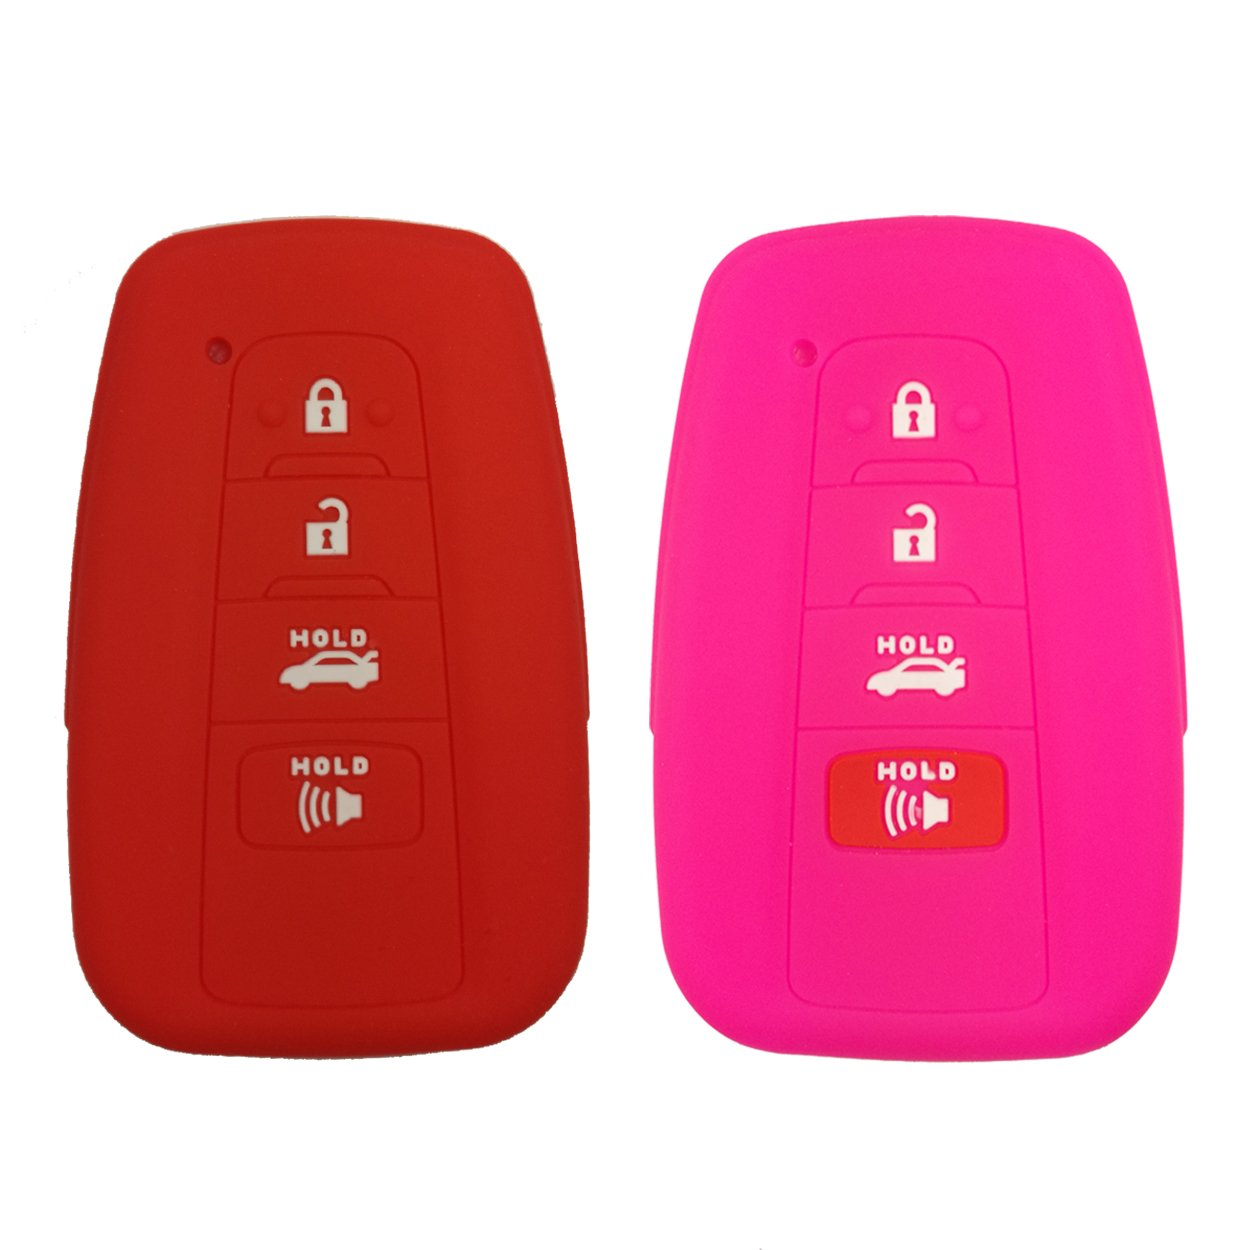 Coolbestda 2Pcs Rubber 4buttons Key Fob Cover Protector Case Keyless Entry Holder Skin Jacket for 2018 Toyota Camry C-HR Prius HYQ14FBC Rose Red by Coolbestda